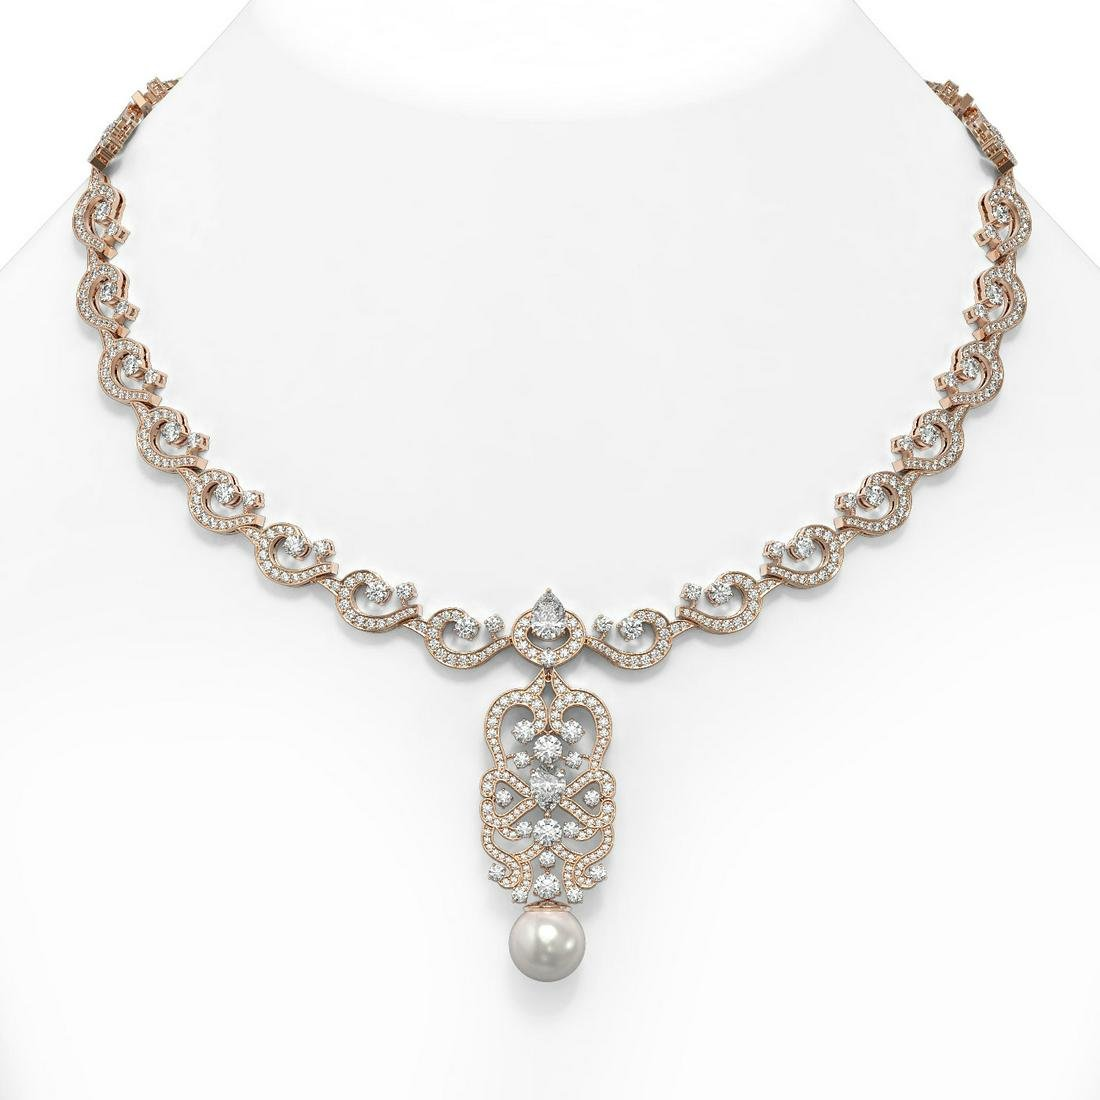 25 ctw Pear Cut Diamond & Pearl Necklace 18K Rose Gold